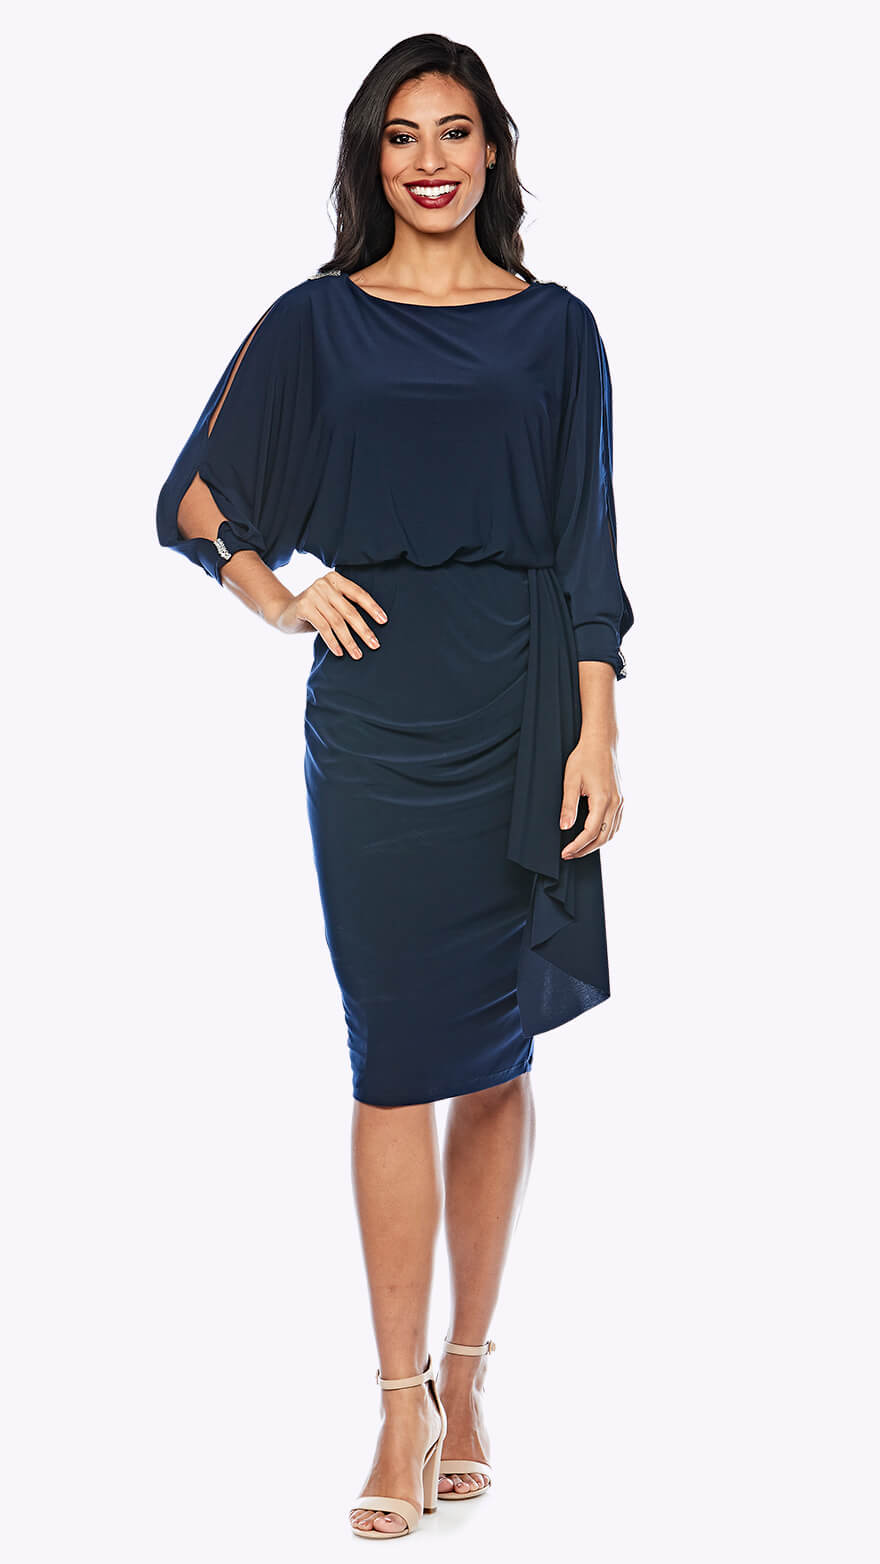 Z0150 Blouson style knee-length dress with wrap style skirt and open 3/4 sleeve